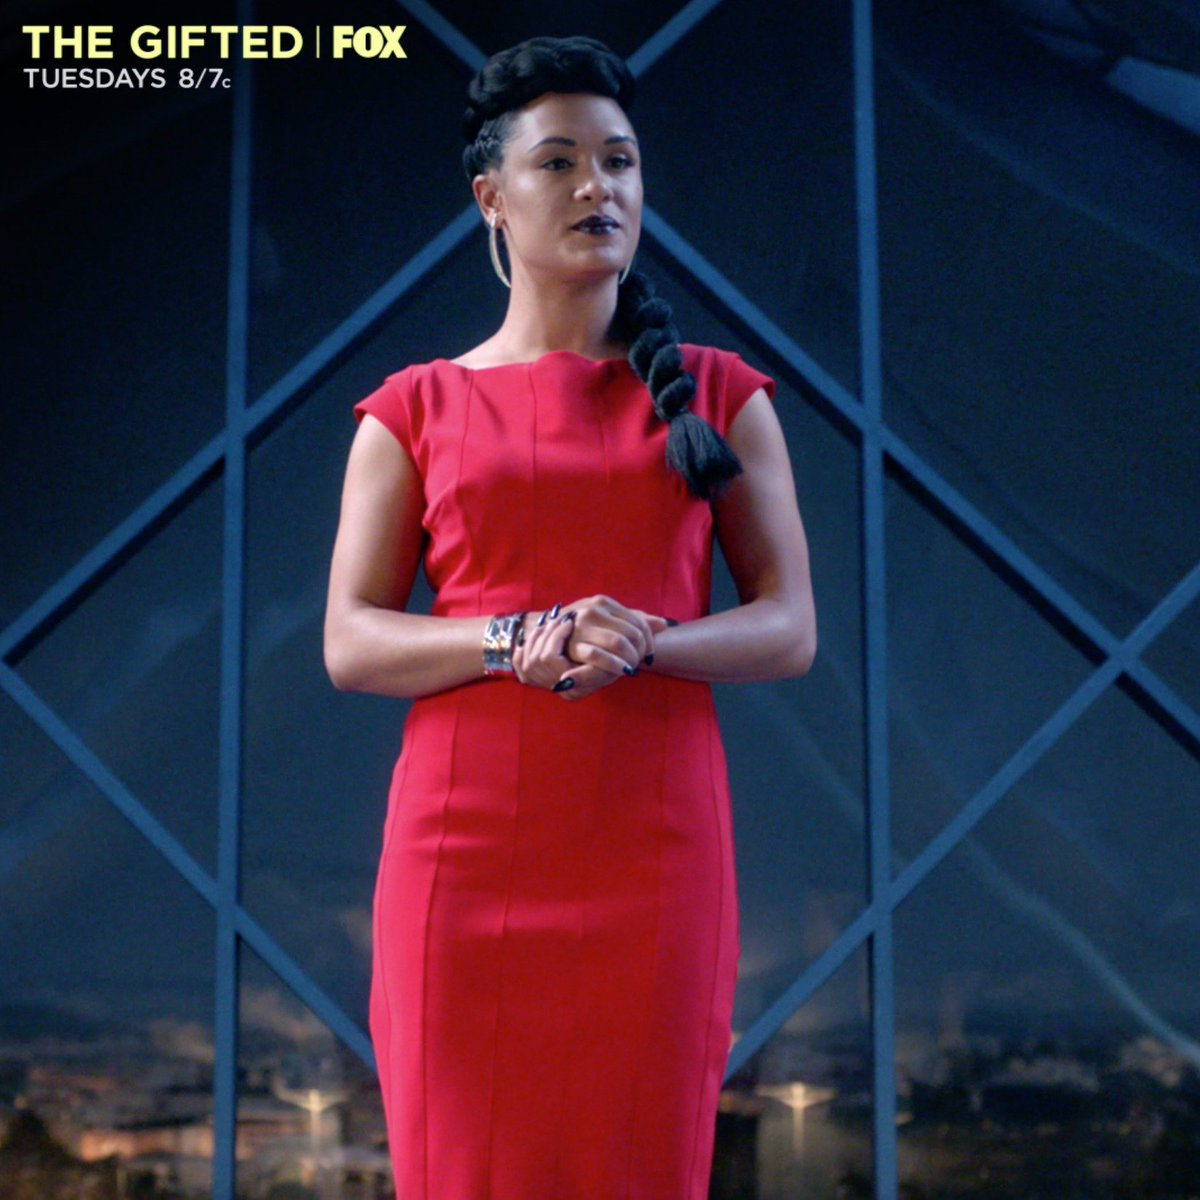 You either join the revolution, or you get left behind. Stream last night's season premiere of #TheGifted now: https://t.co/y3V2foeOcN